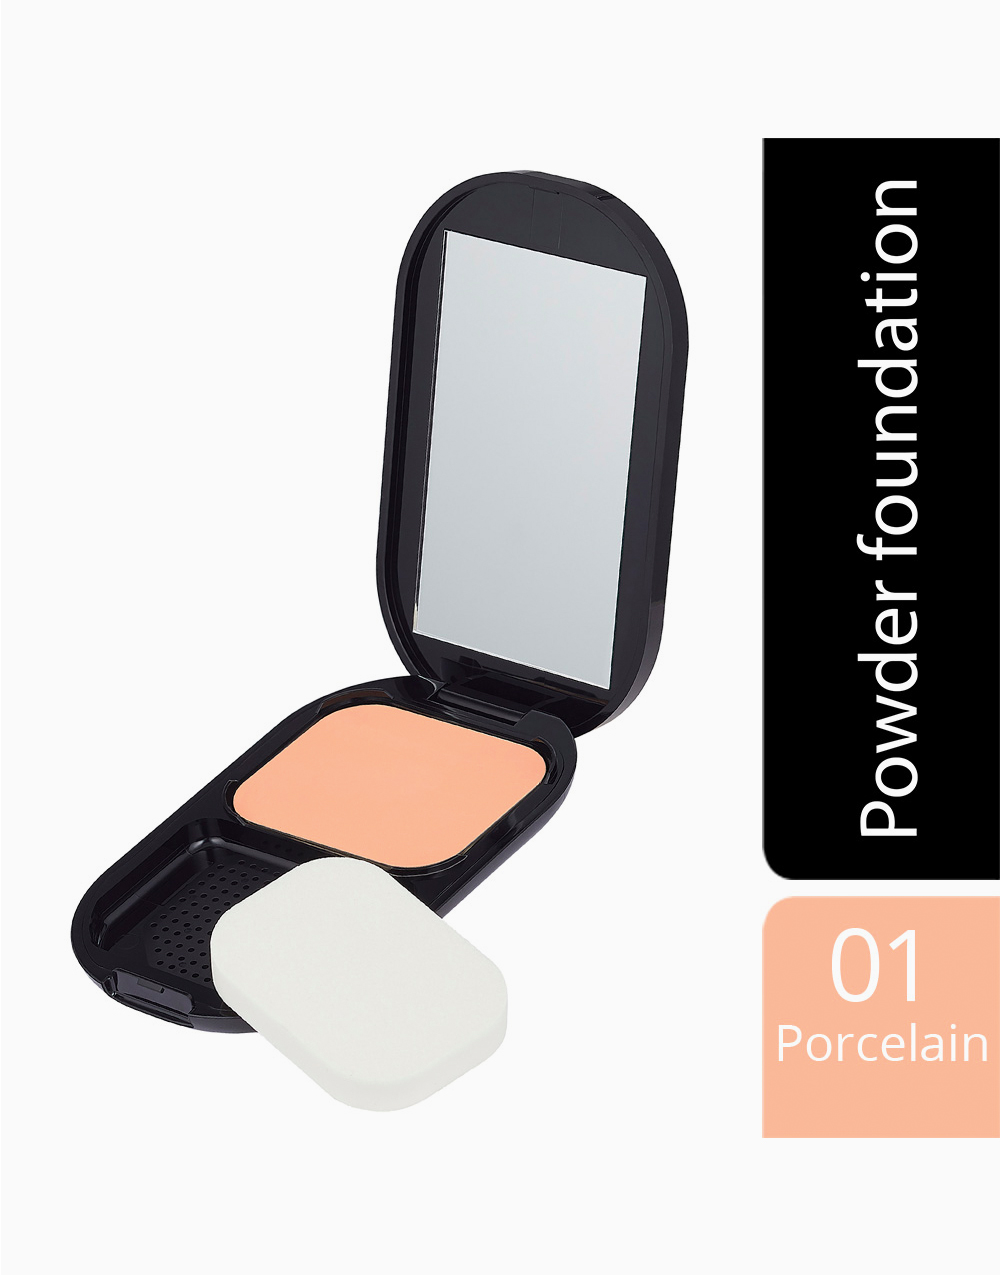 Facefinity Compact by Max Factor | Porcelain